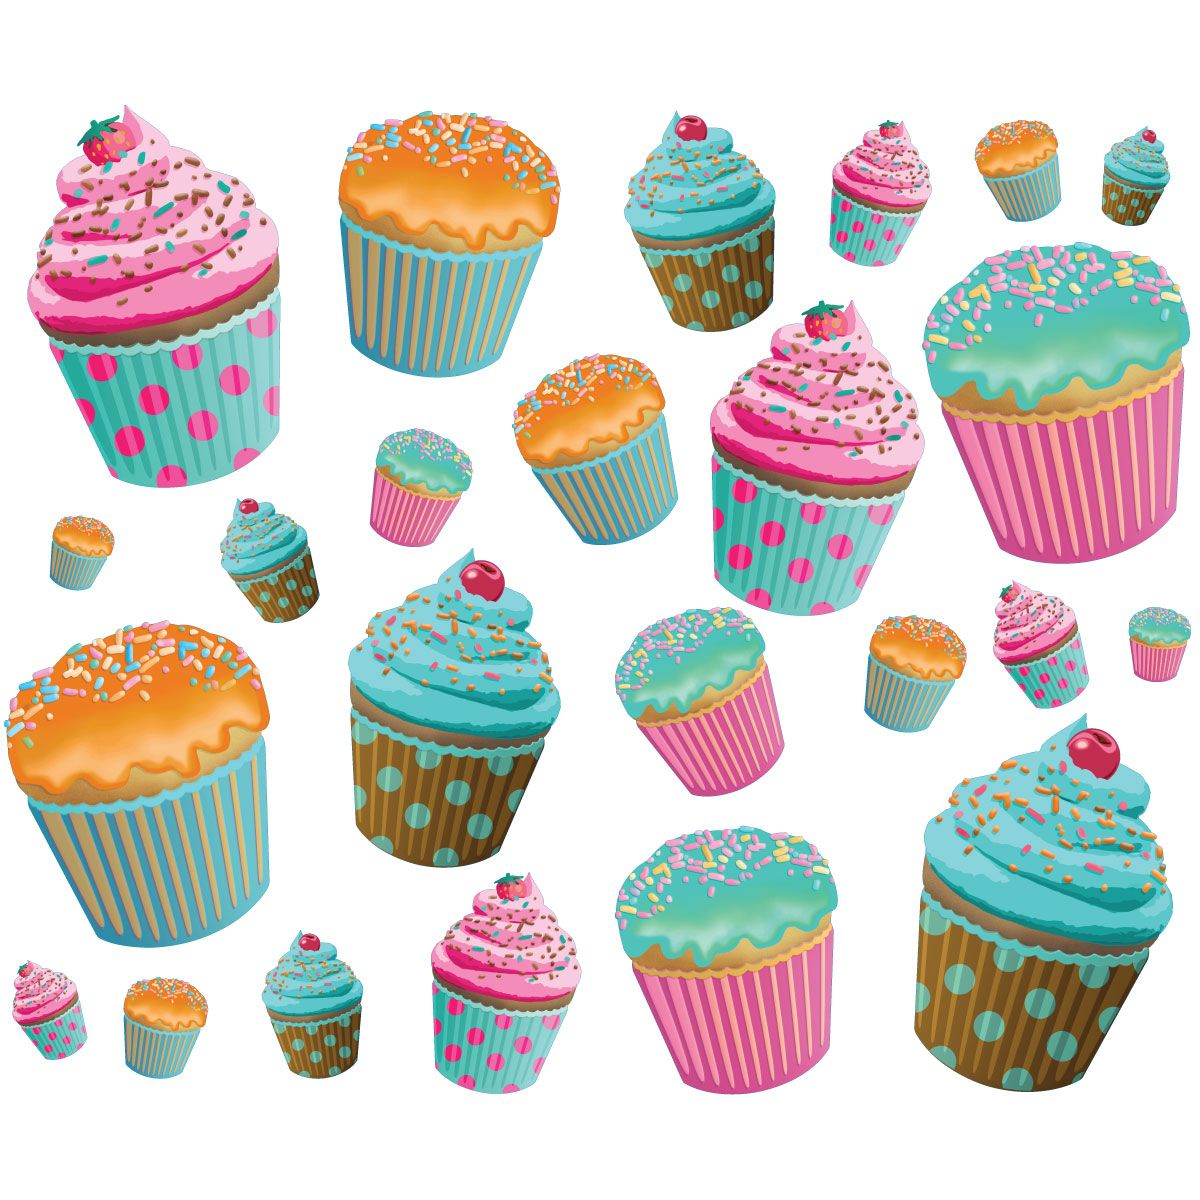 Cupcake Wall Decals Medium Sheet